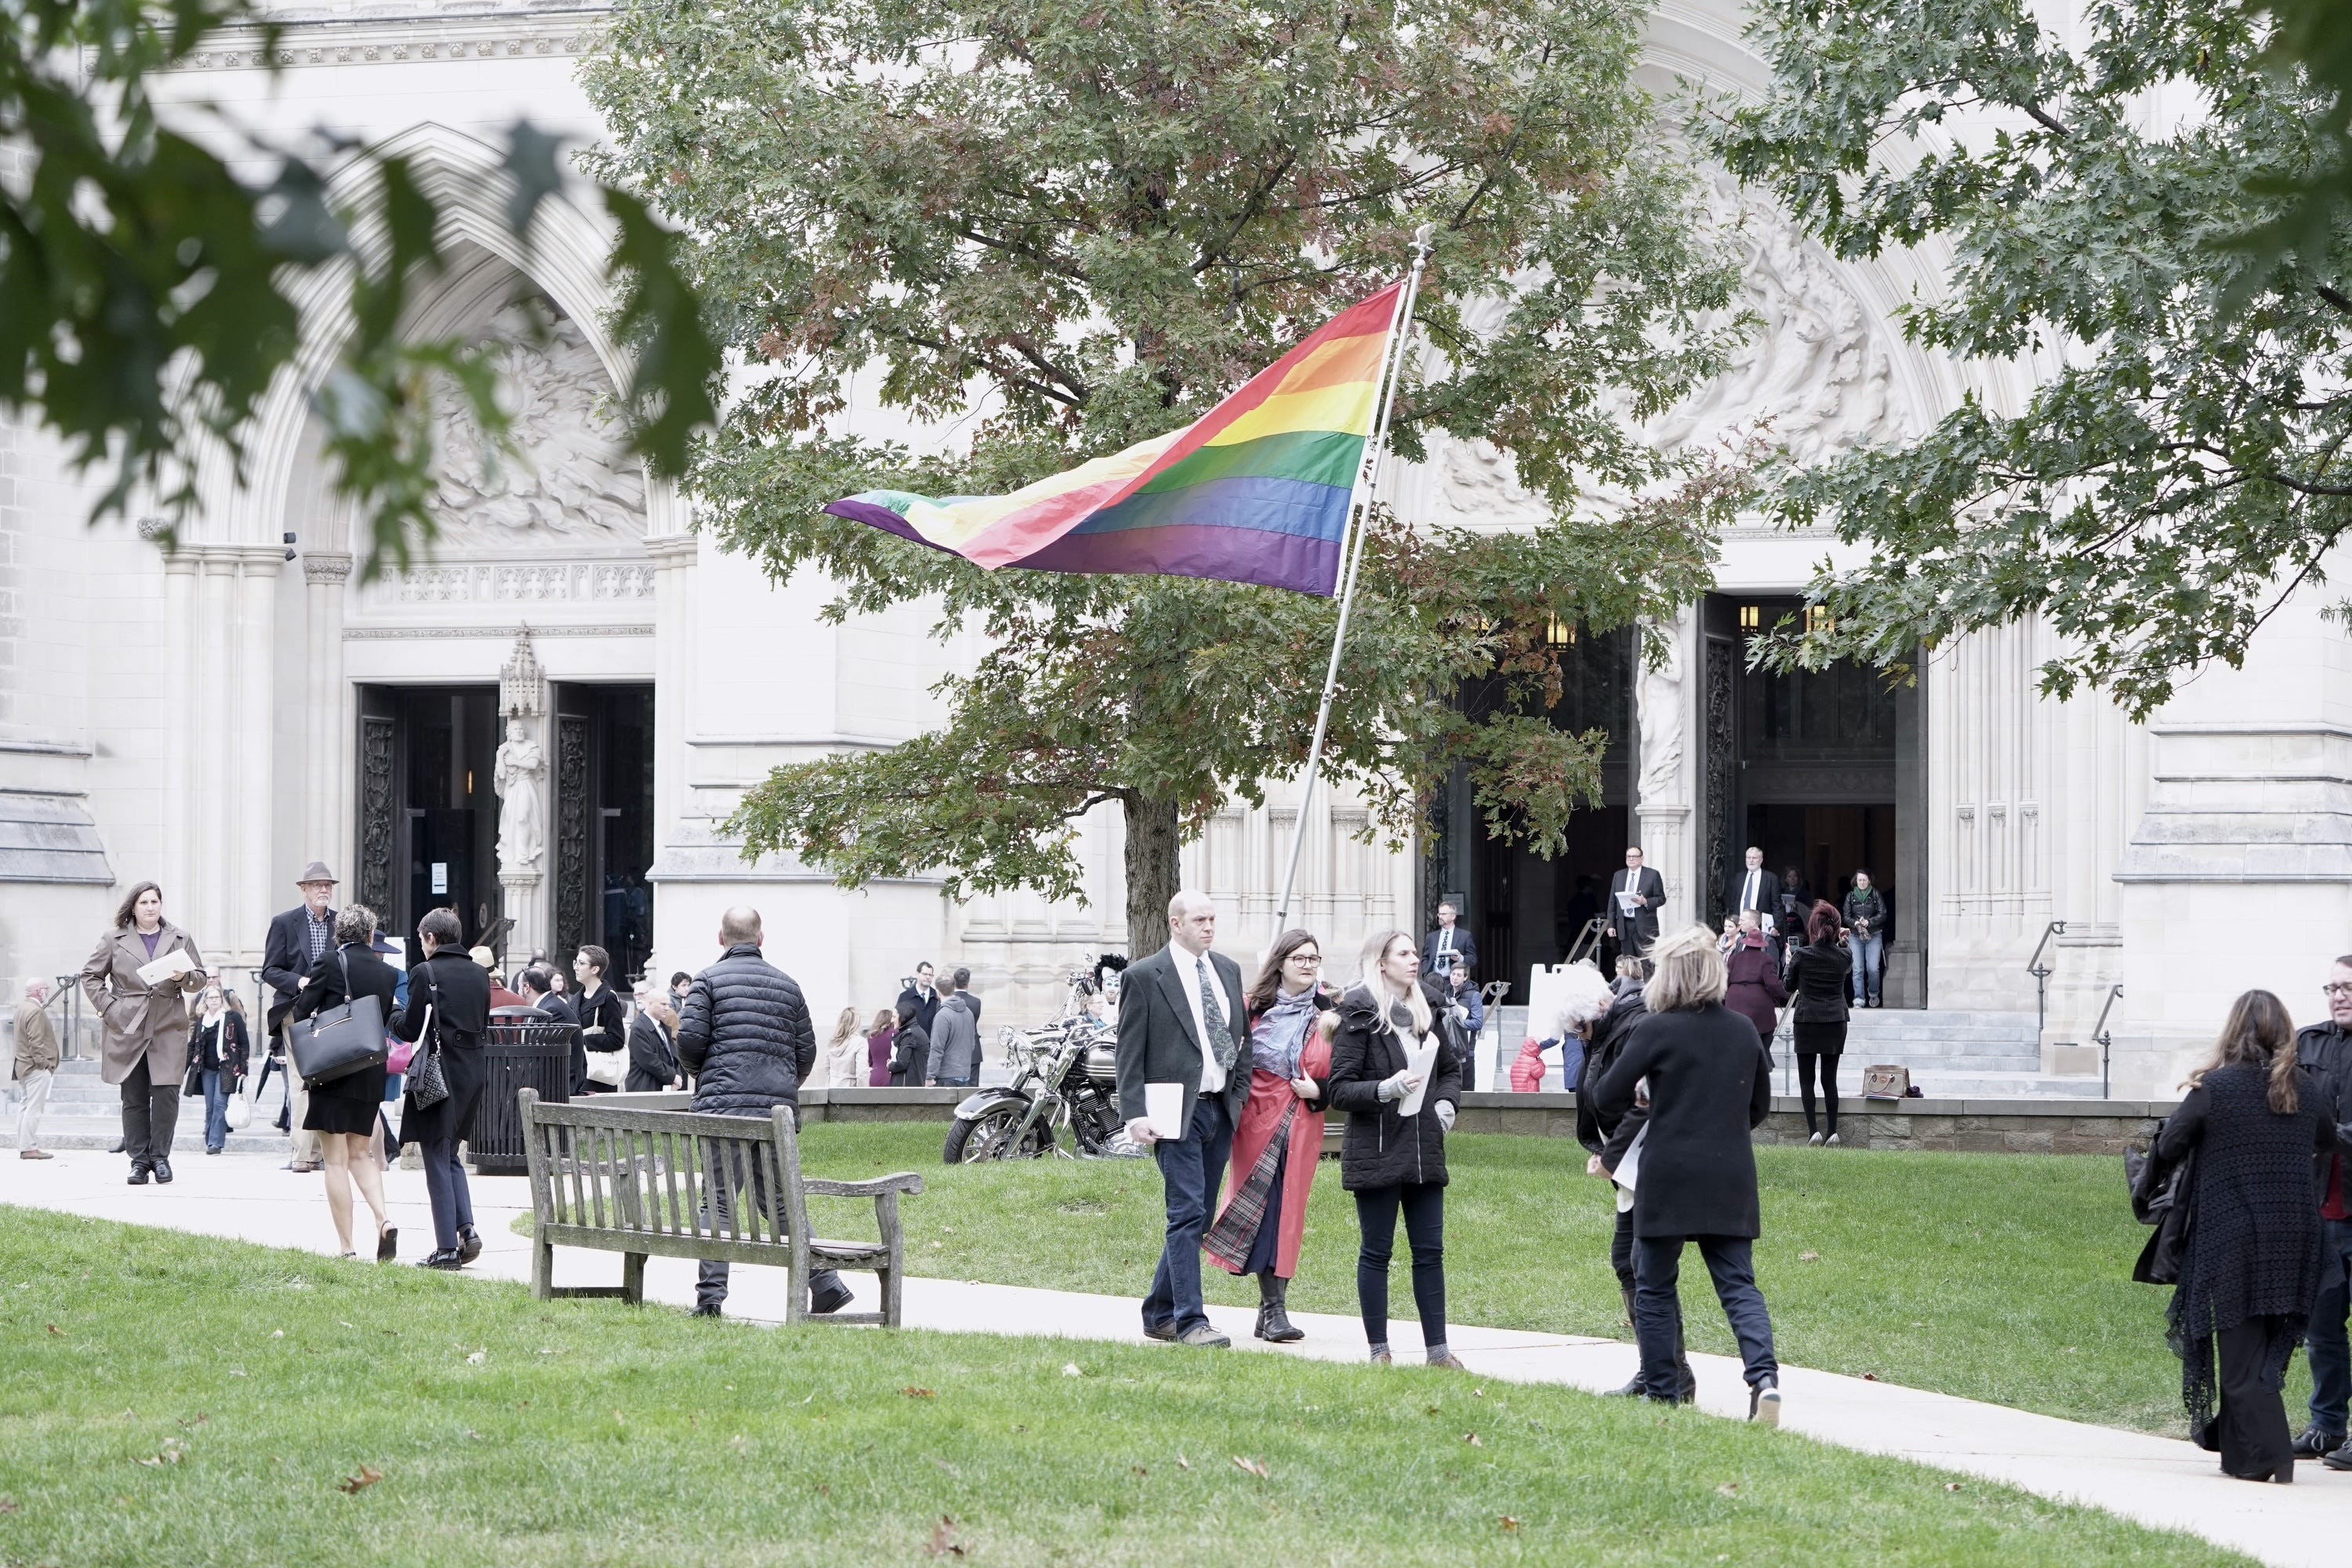 Banning gay panic defenses: The unfinished legacy of the Matthew Shepard case